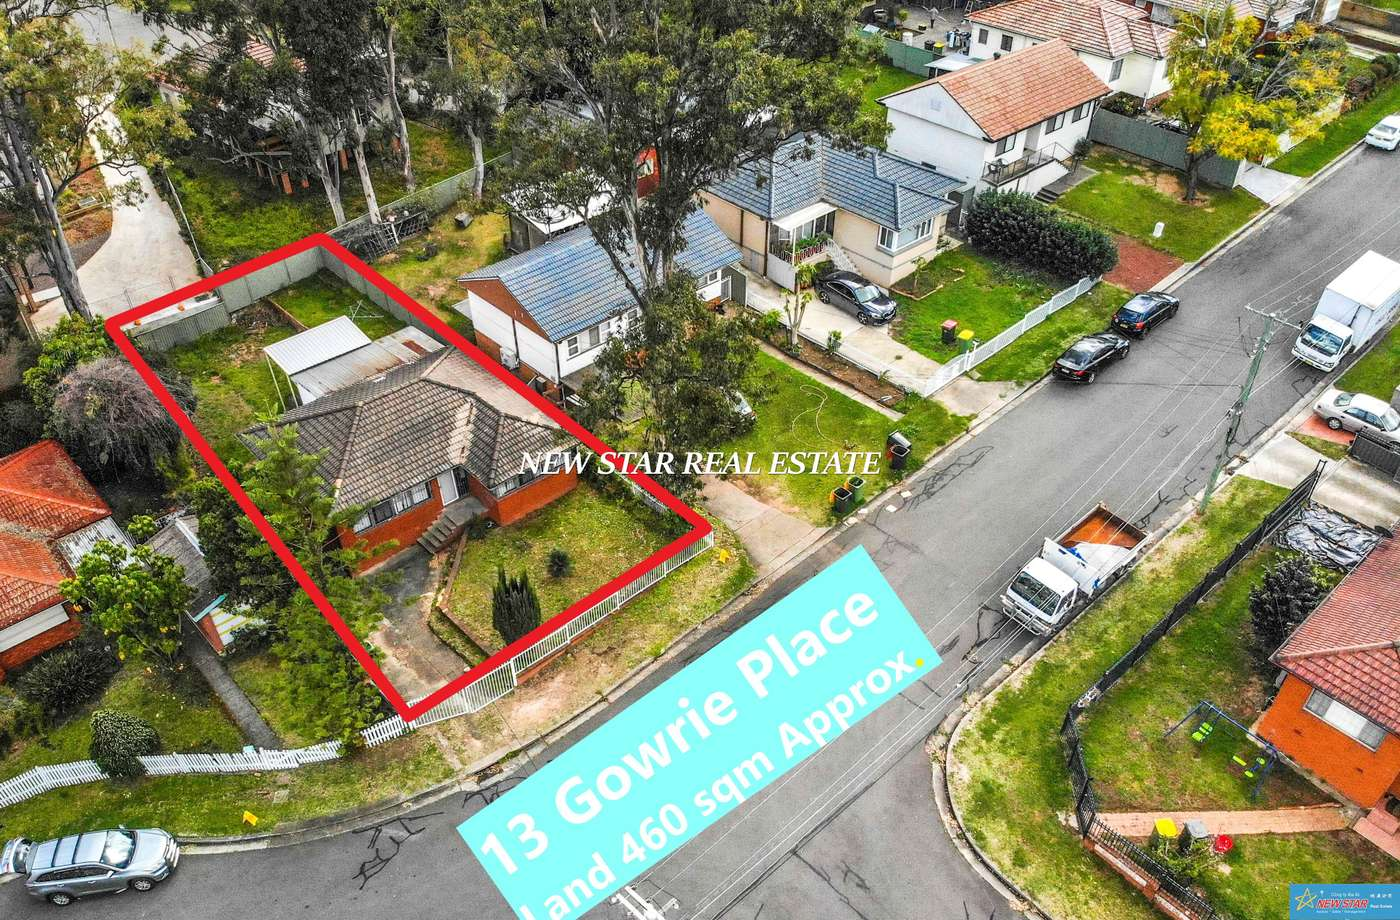 Main view of Homely house listing, 13 Gowrie Place, Cabramatta, NSW 2166